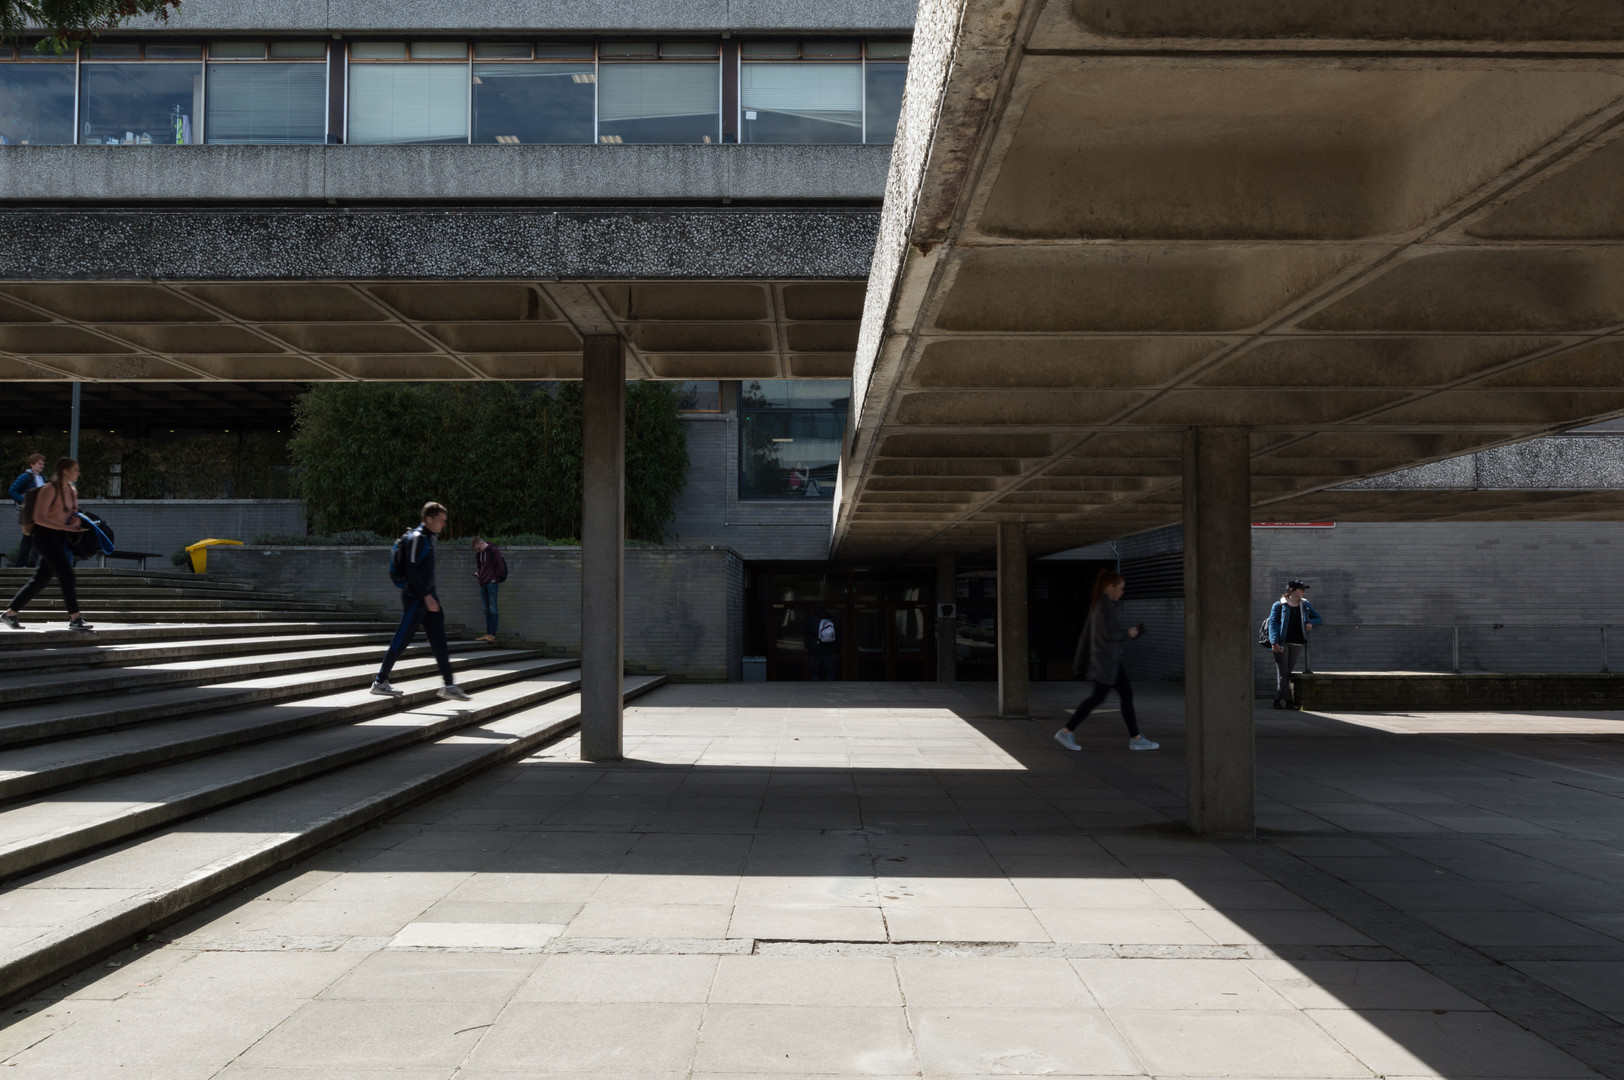 Covered Walkways of the Administration Building in UCD, Dublin